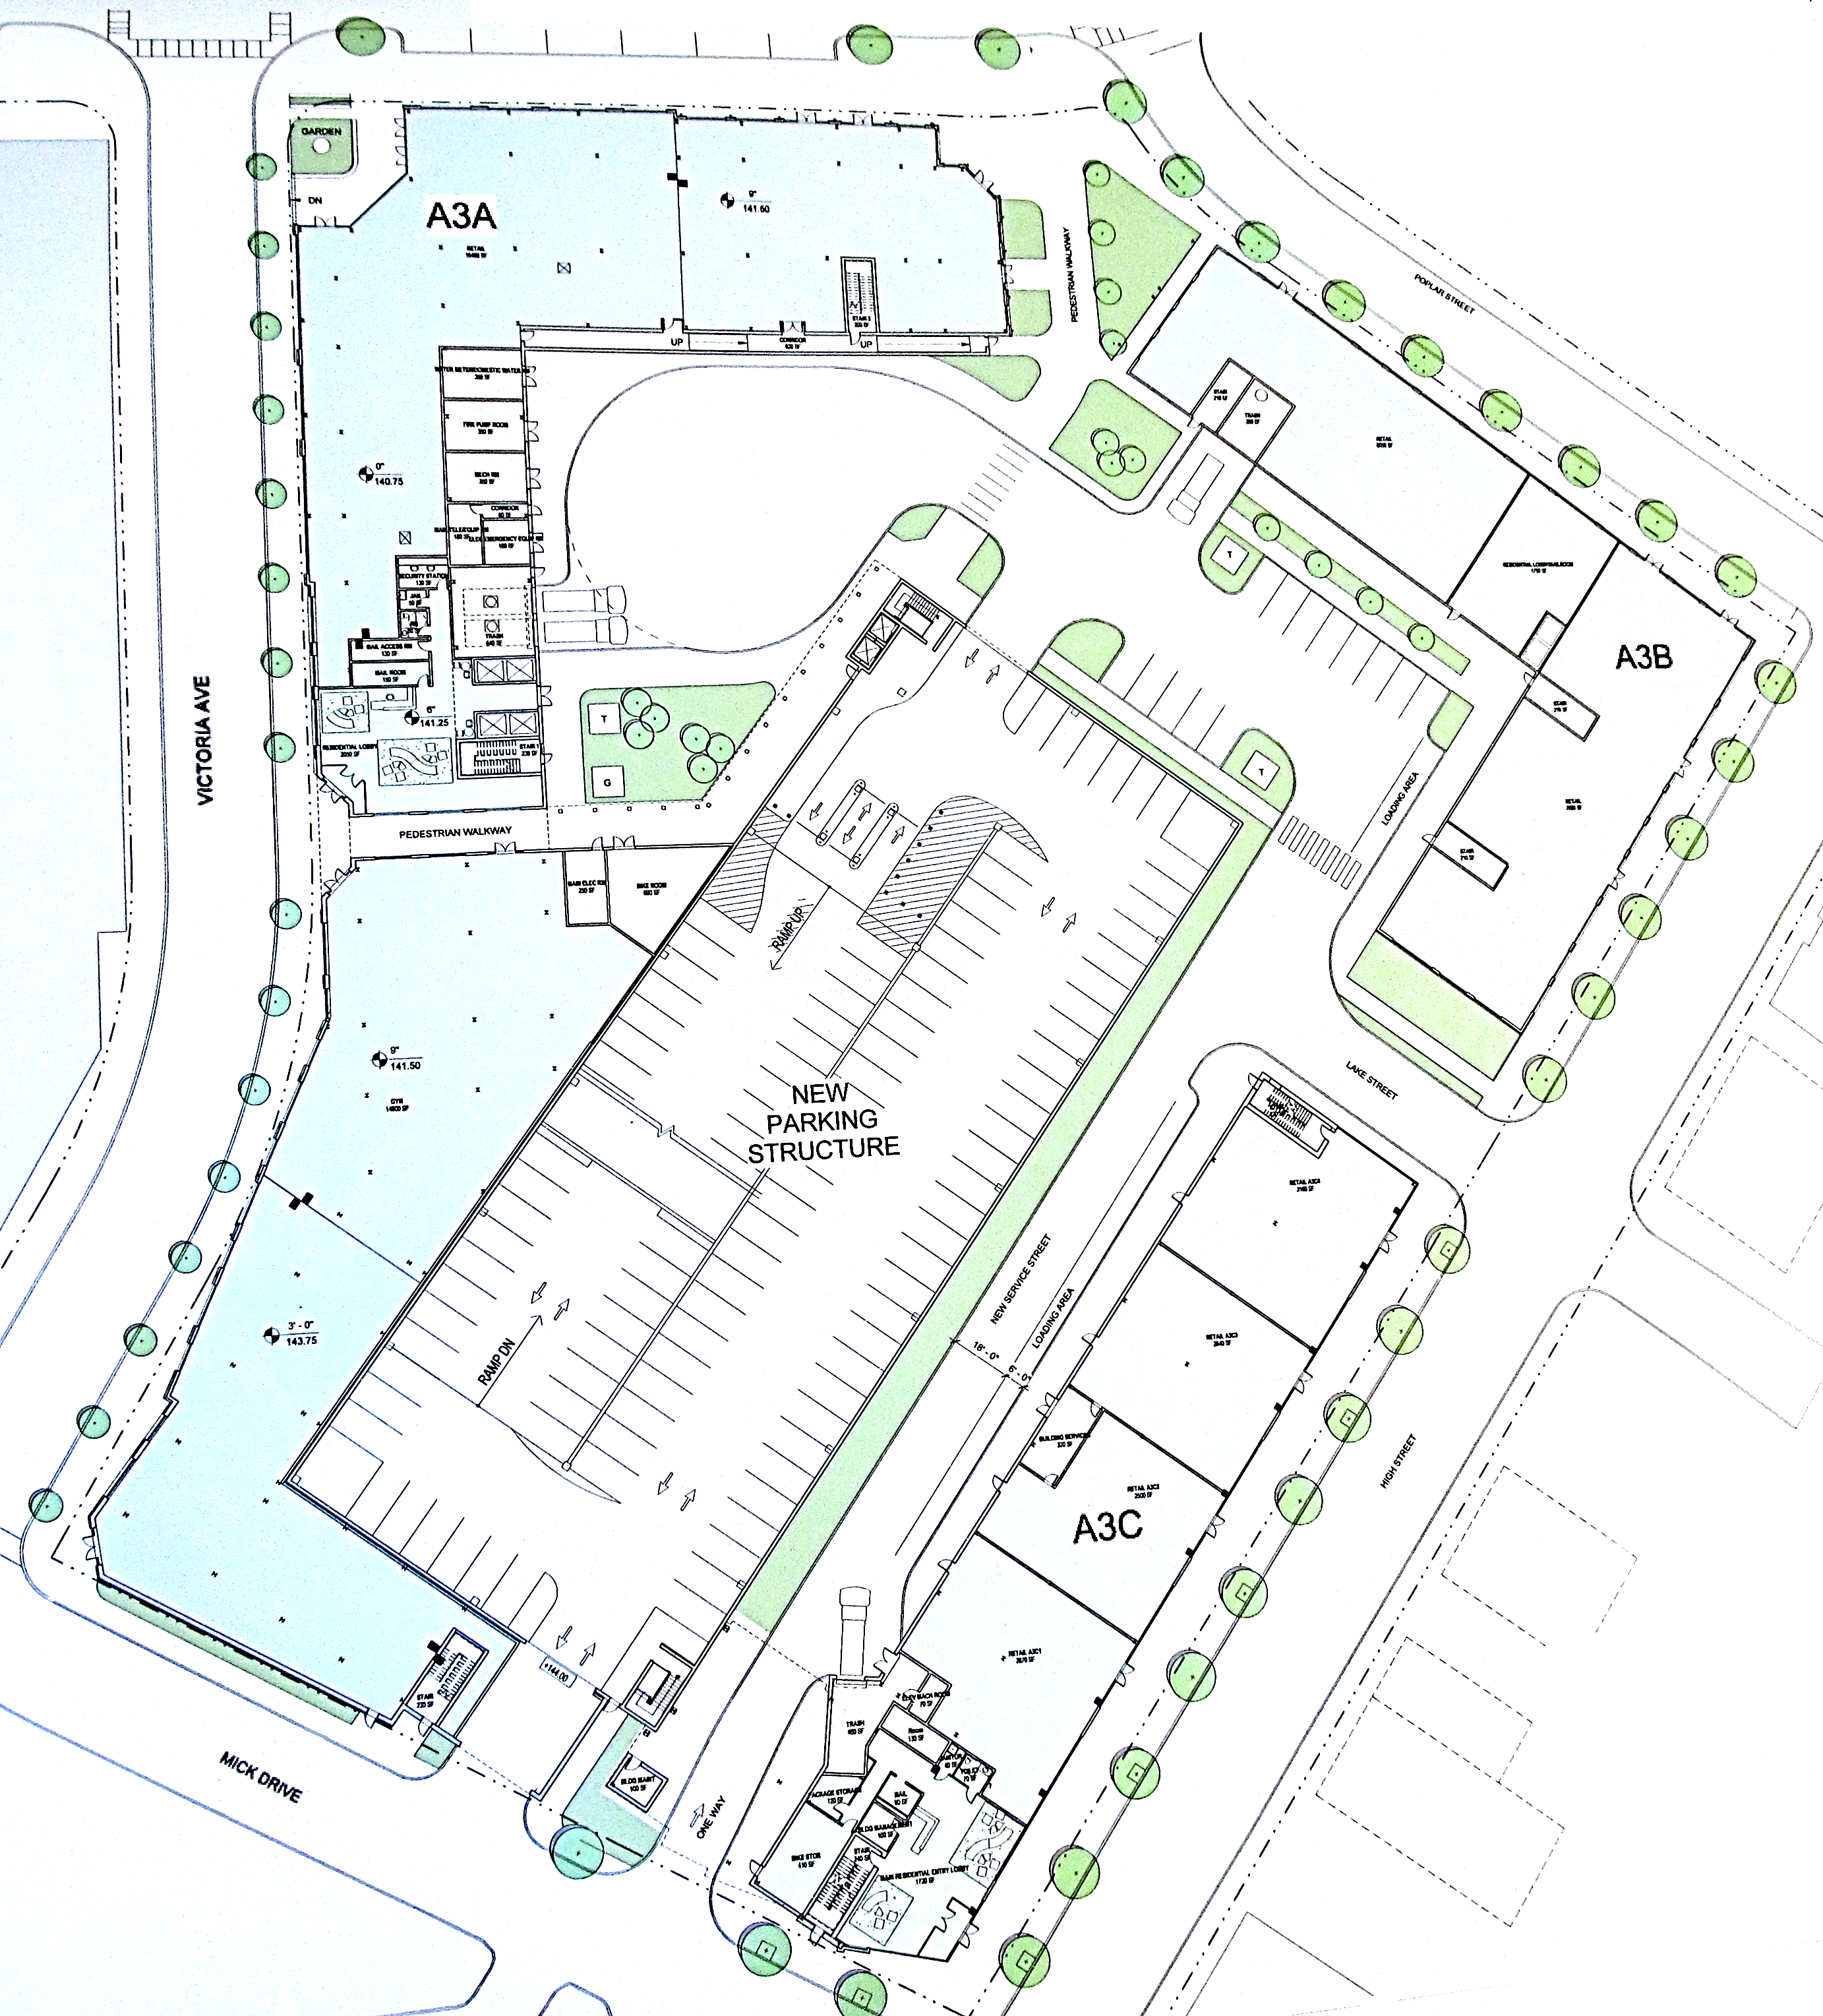 A3a Ground Level Site Plan C Blackney Hayes Architects Prepared For Nexus Properties Rowan Boulevard Development